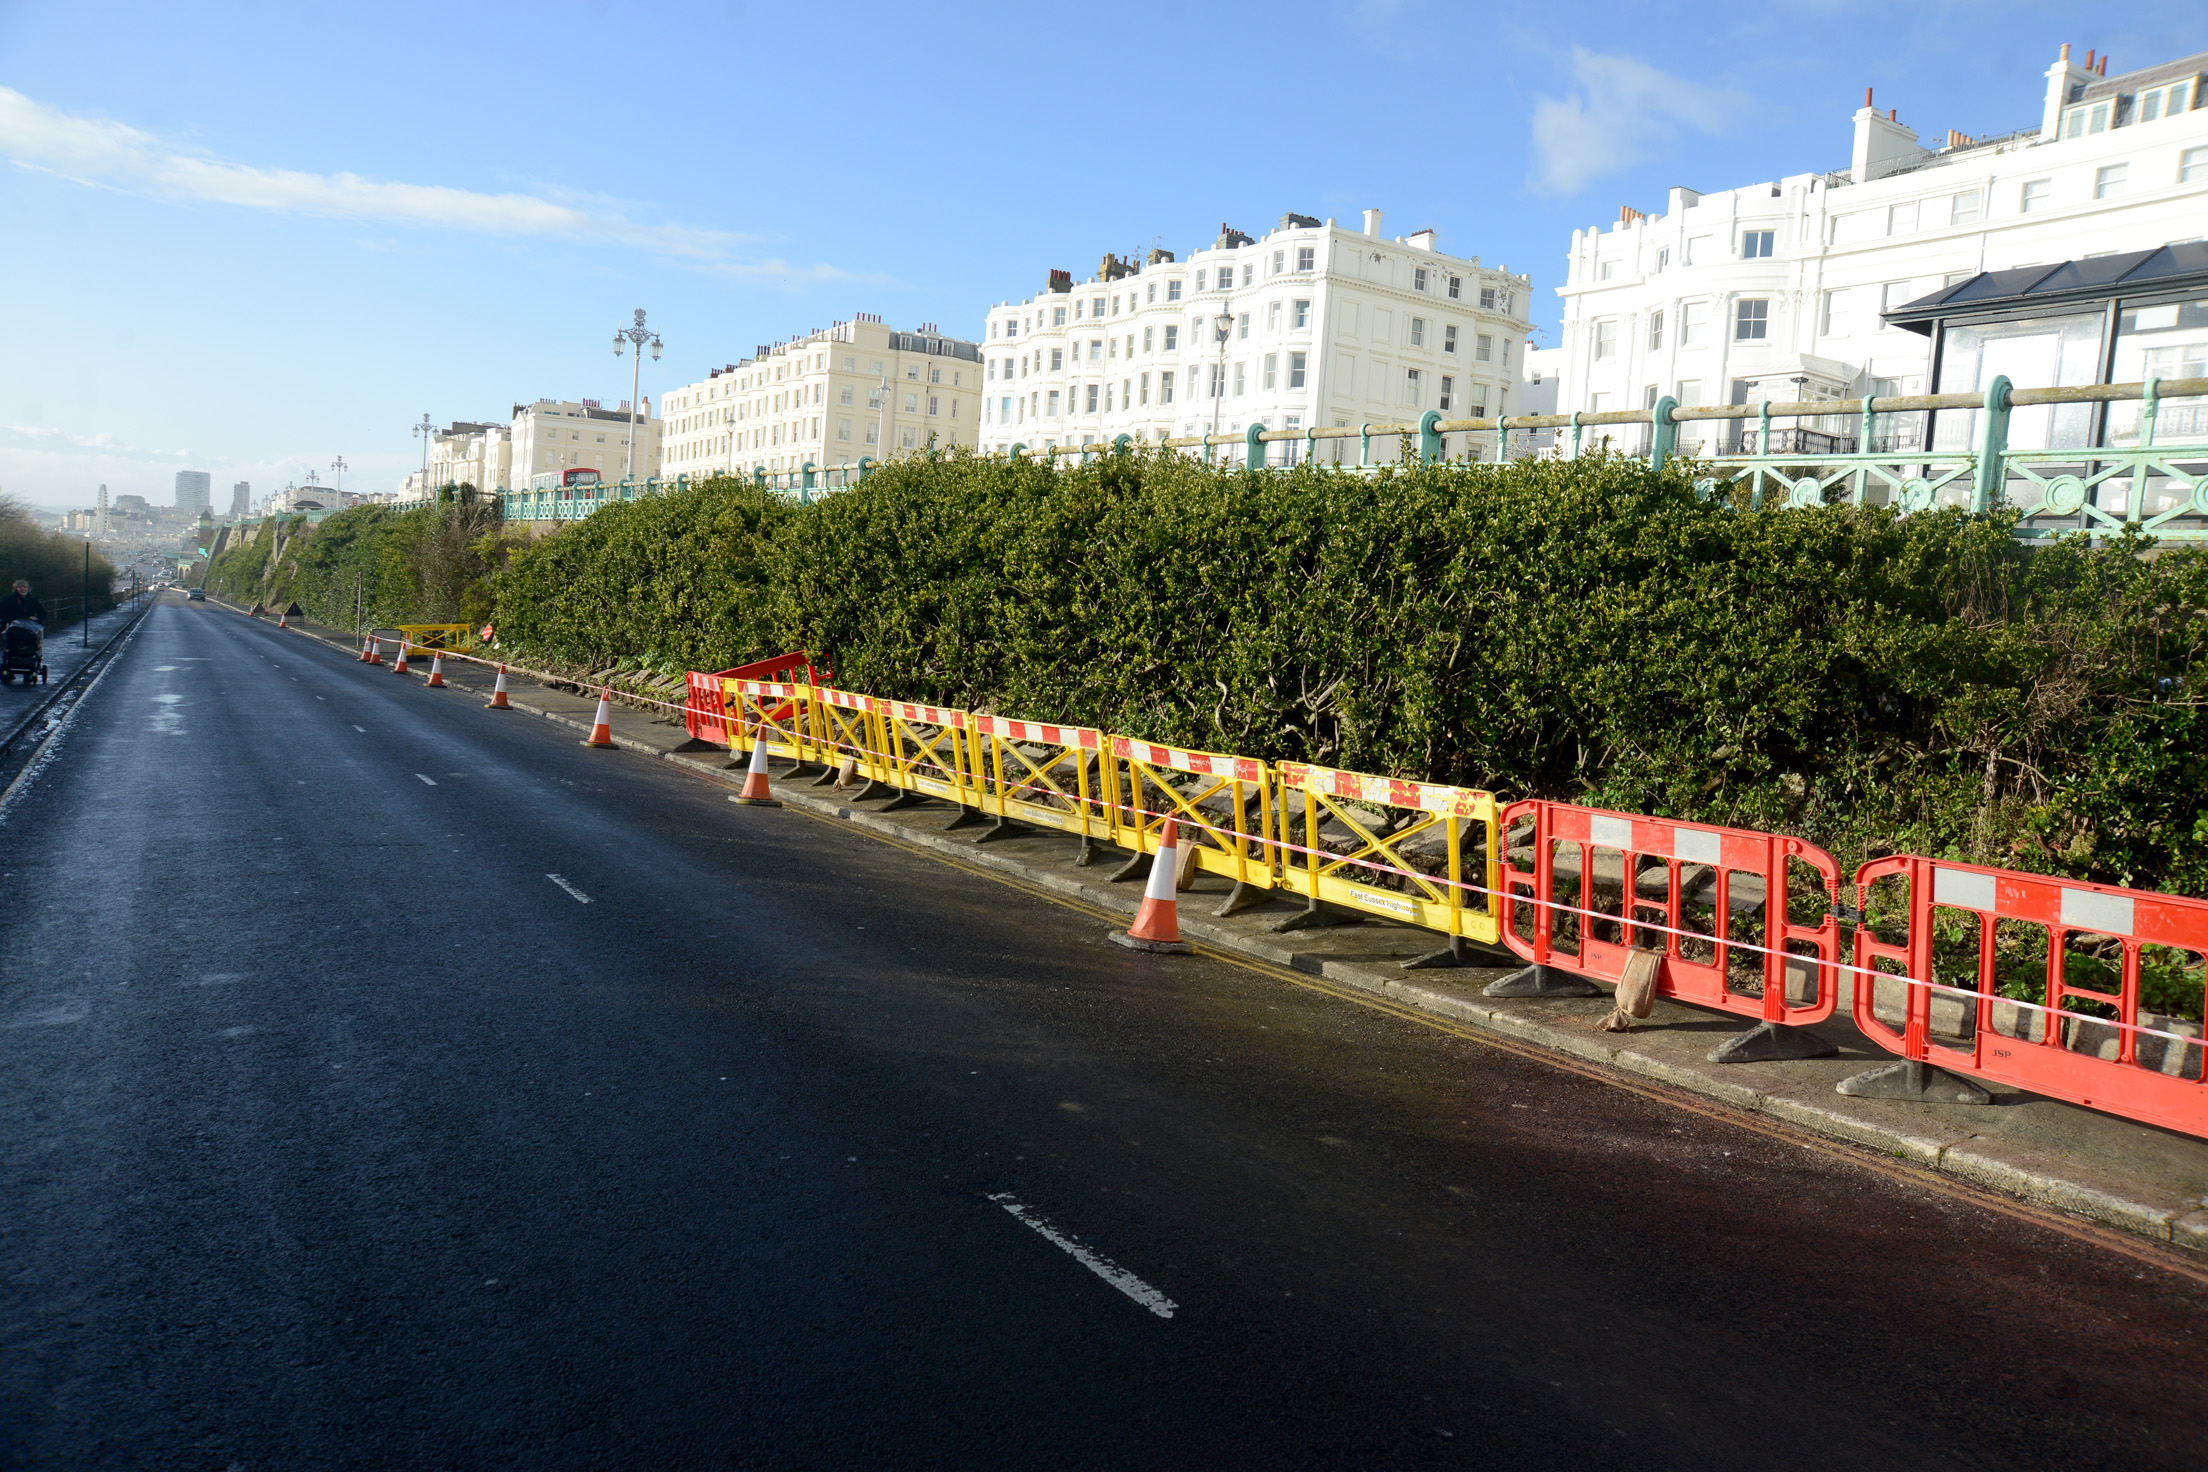 The Argus: Major Conservation Project on 'Green Wall' in Brighton